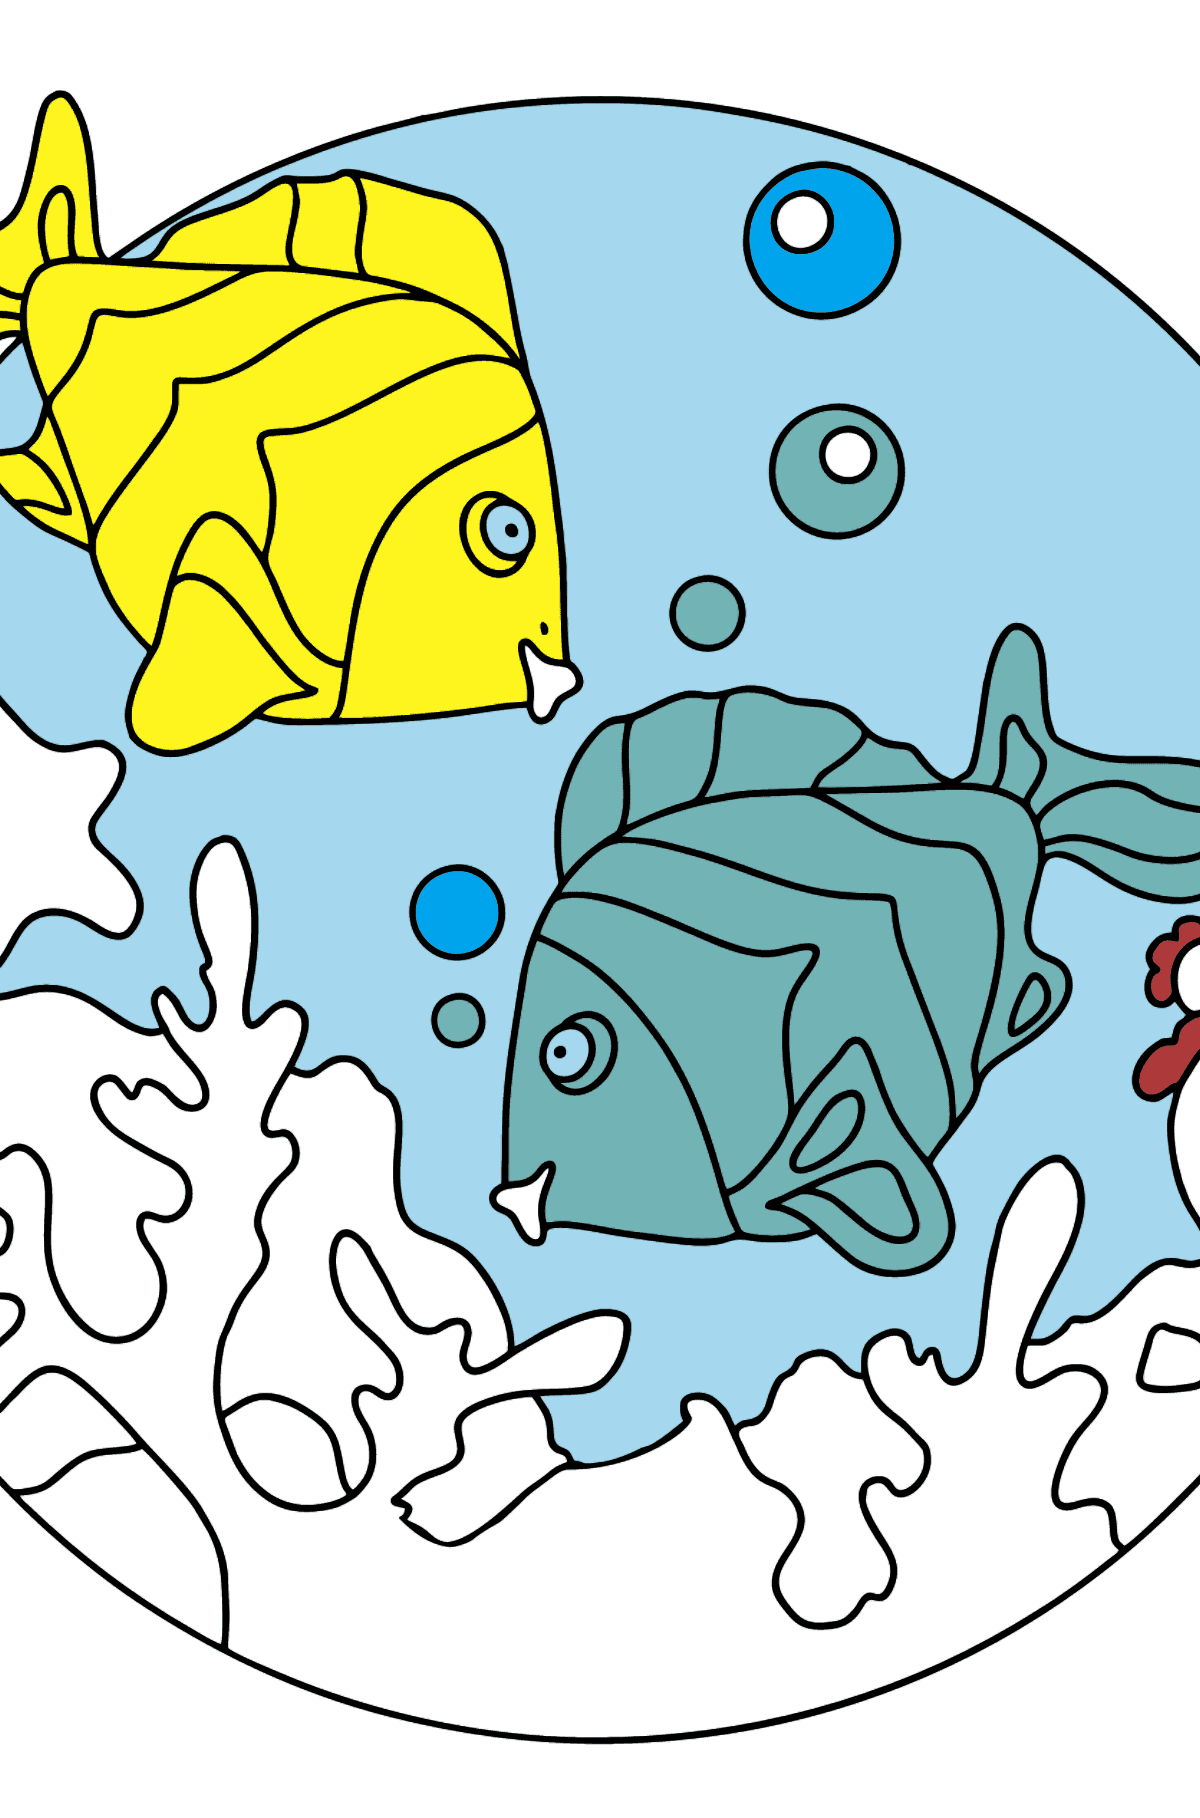 Coloring Page - Fish are Playing Happily - Coloring Pages for Kids